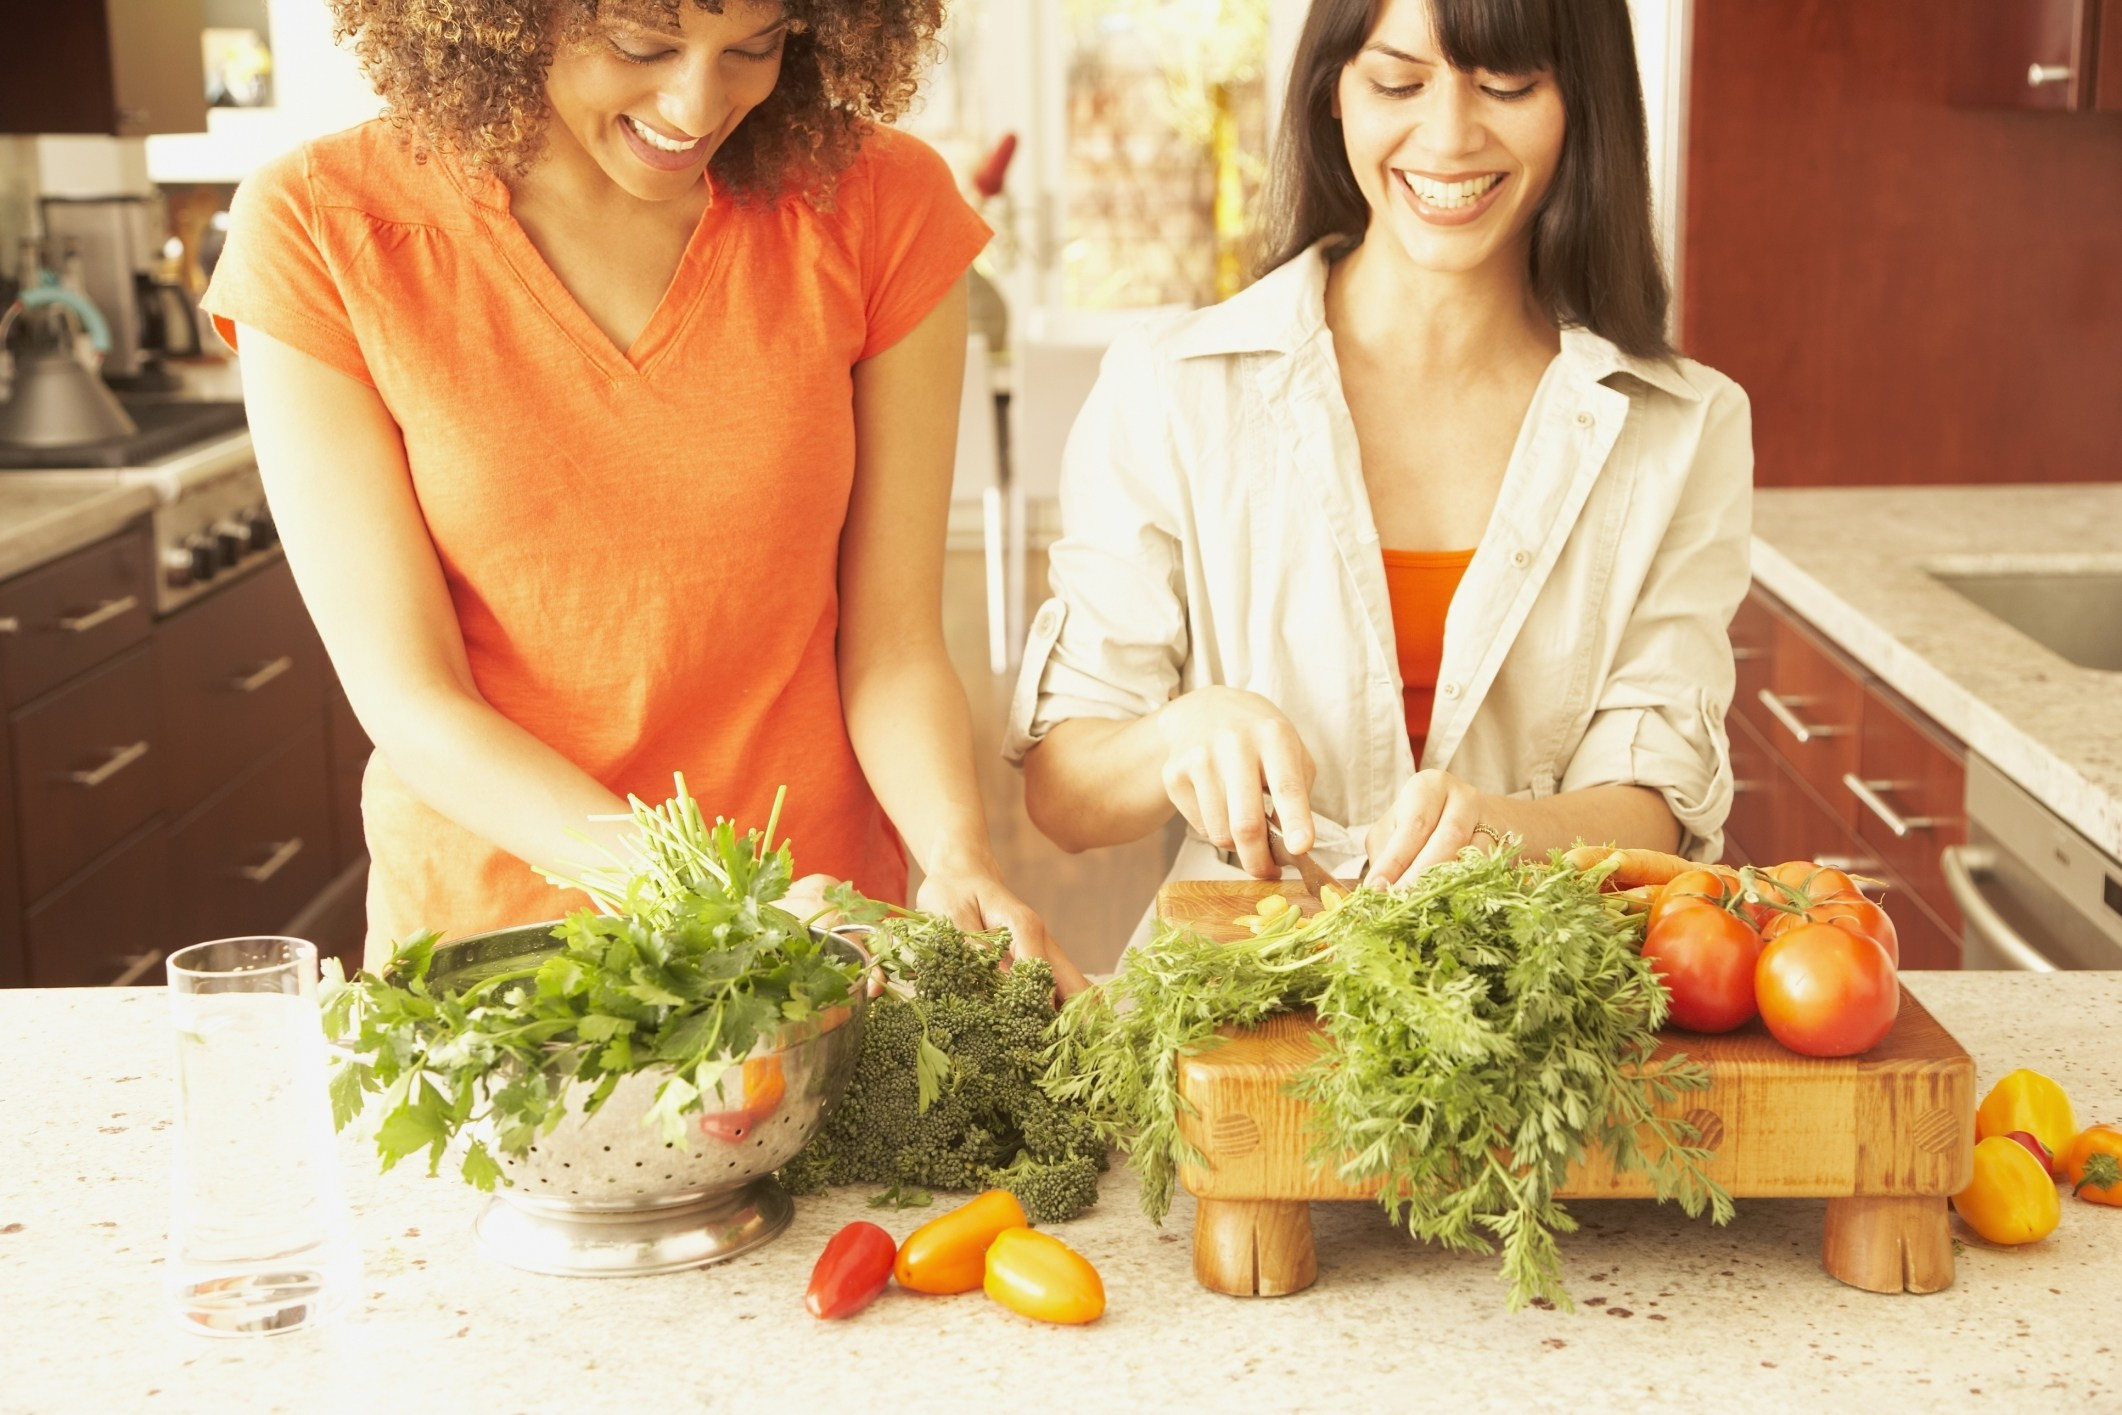 friends chopping vegetables